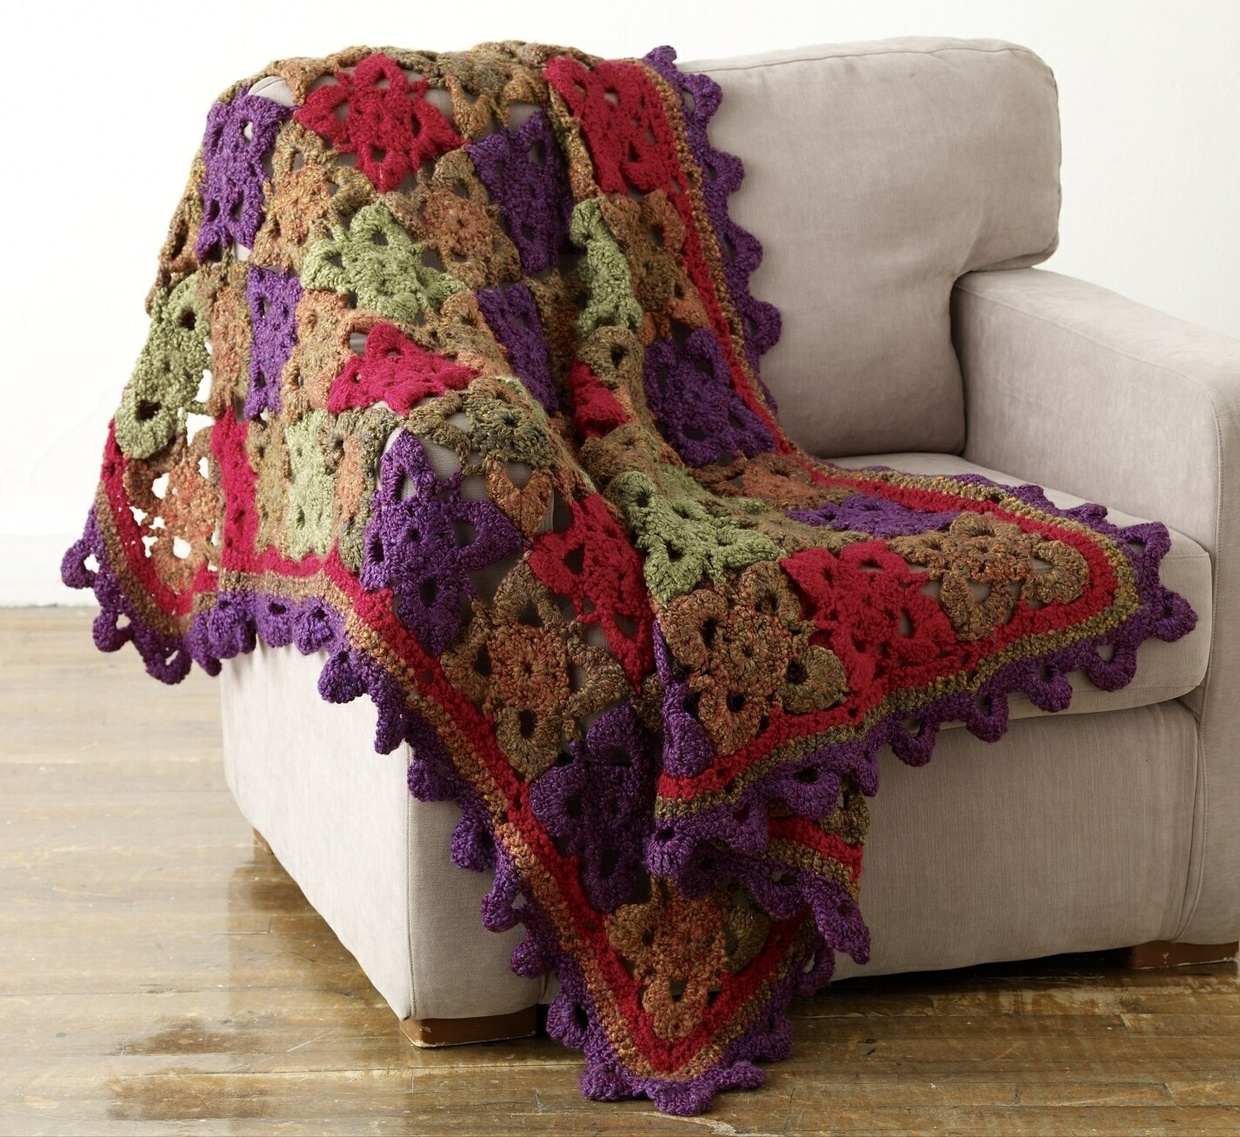 Crochet Flower Throw